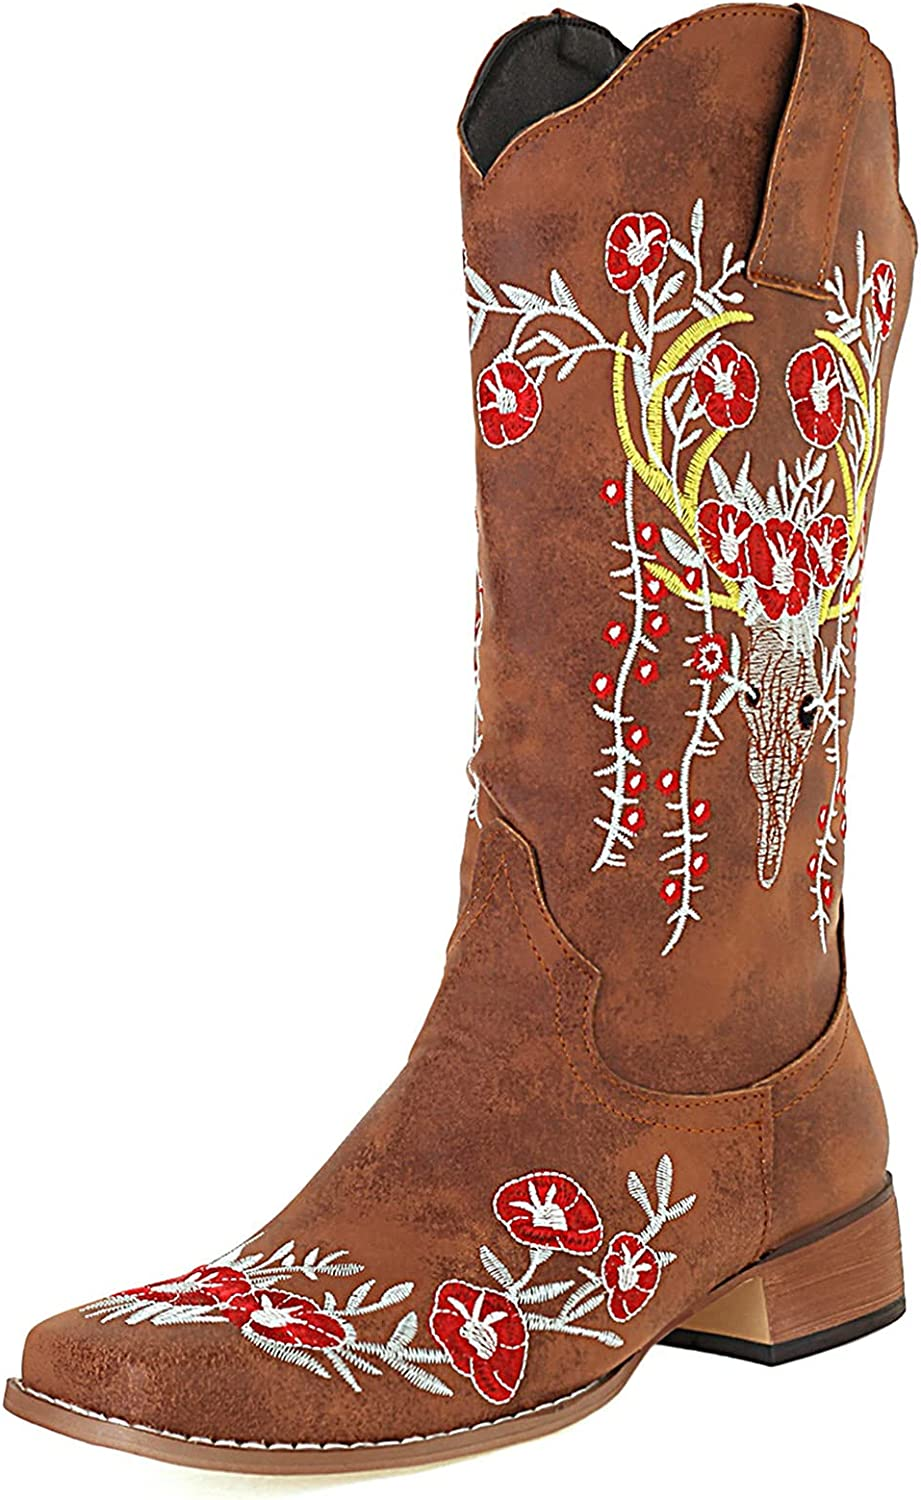 SaraIris Women's Western Boot Cowgirl Chunky High Heel Cowboy Boot Vintage Leopard Knee High Boots Pointed Toe Slip On Boots